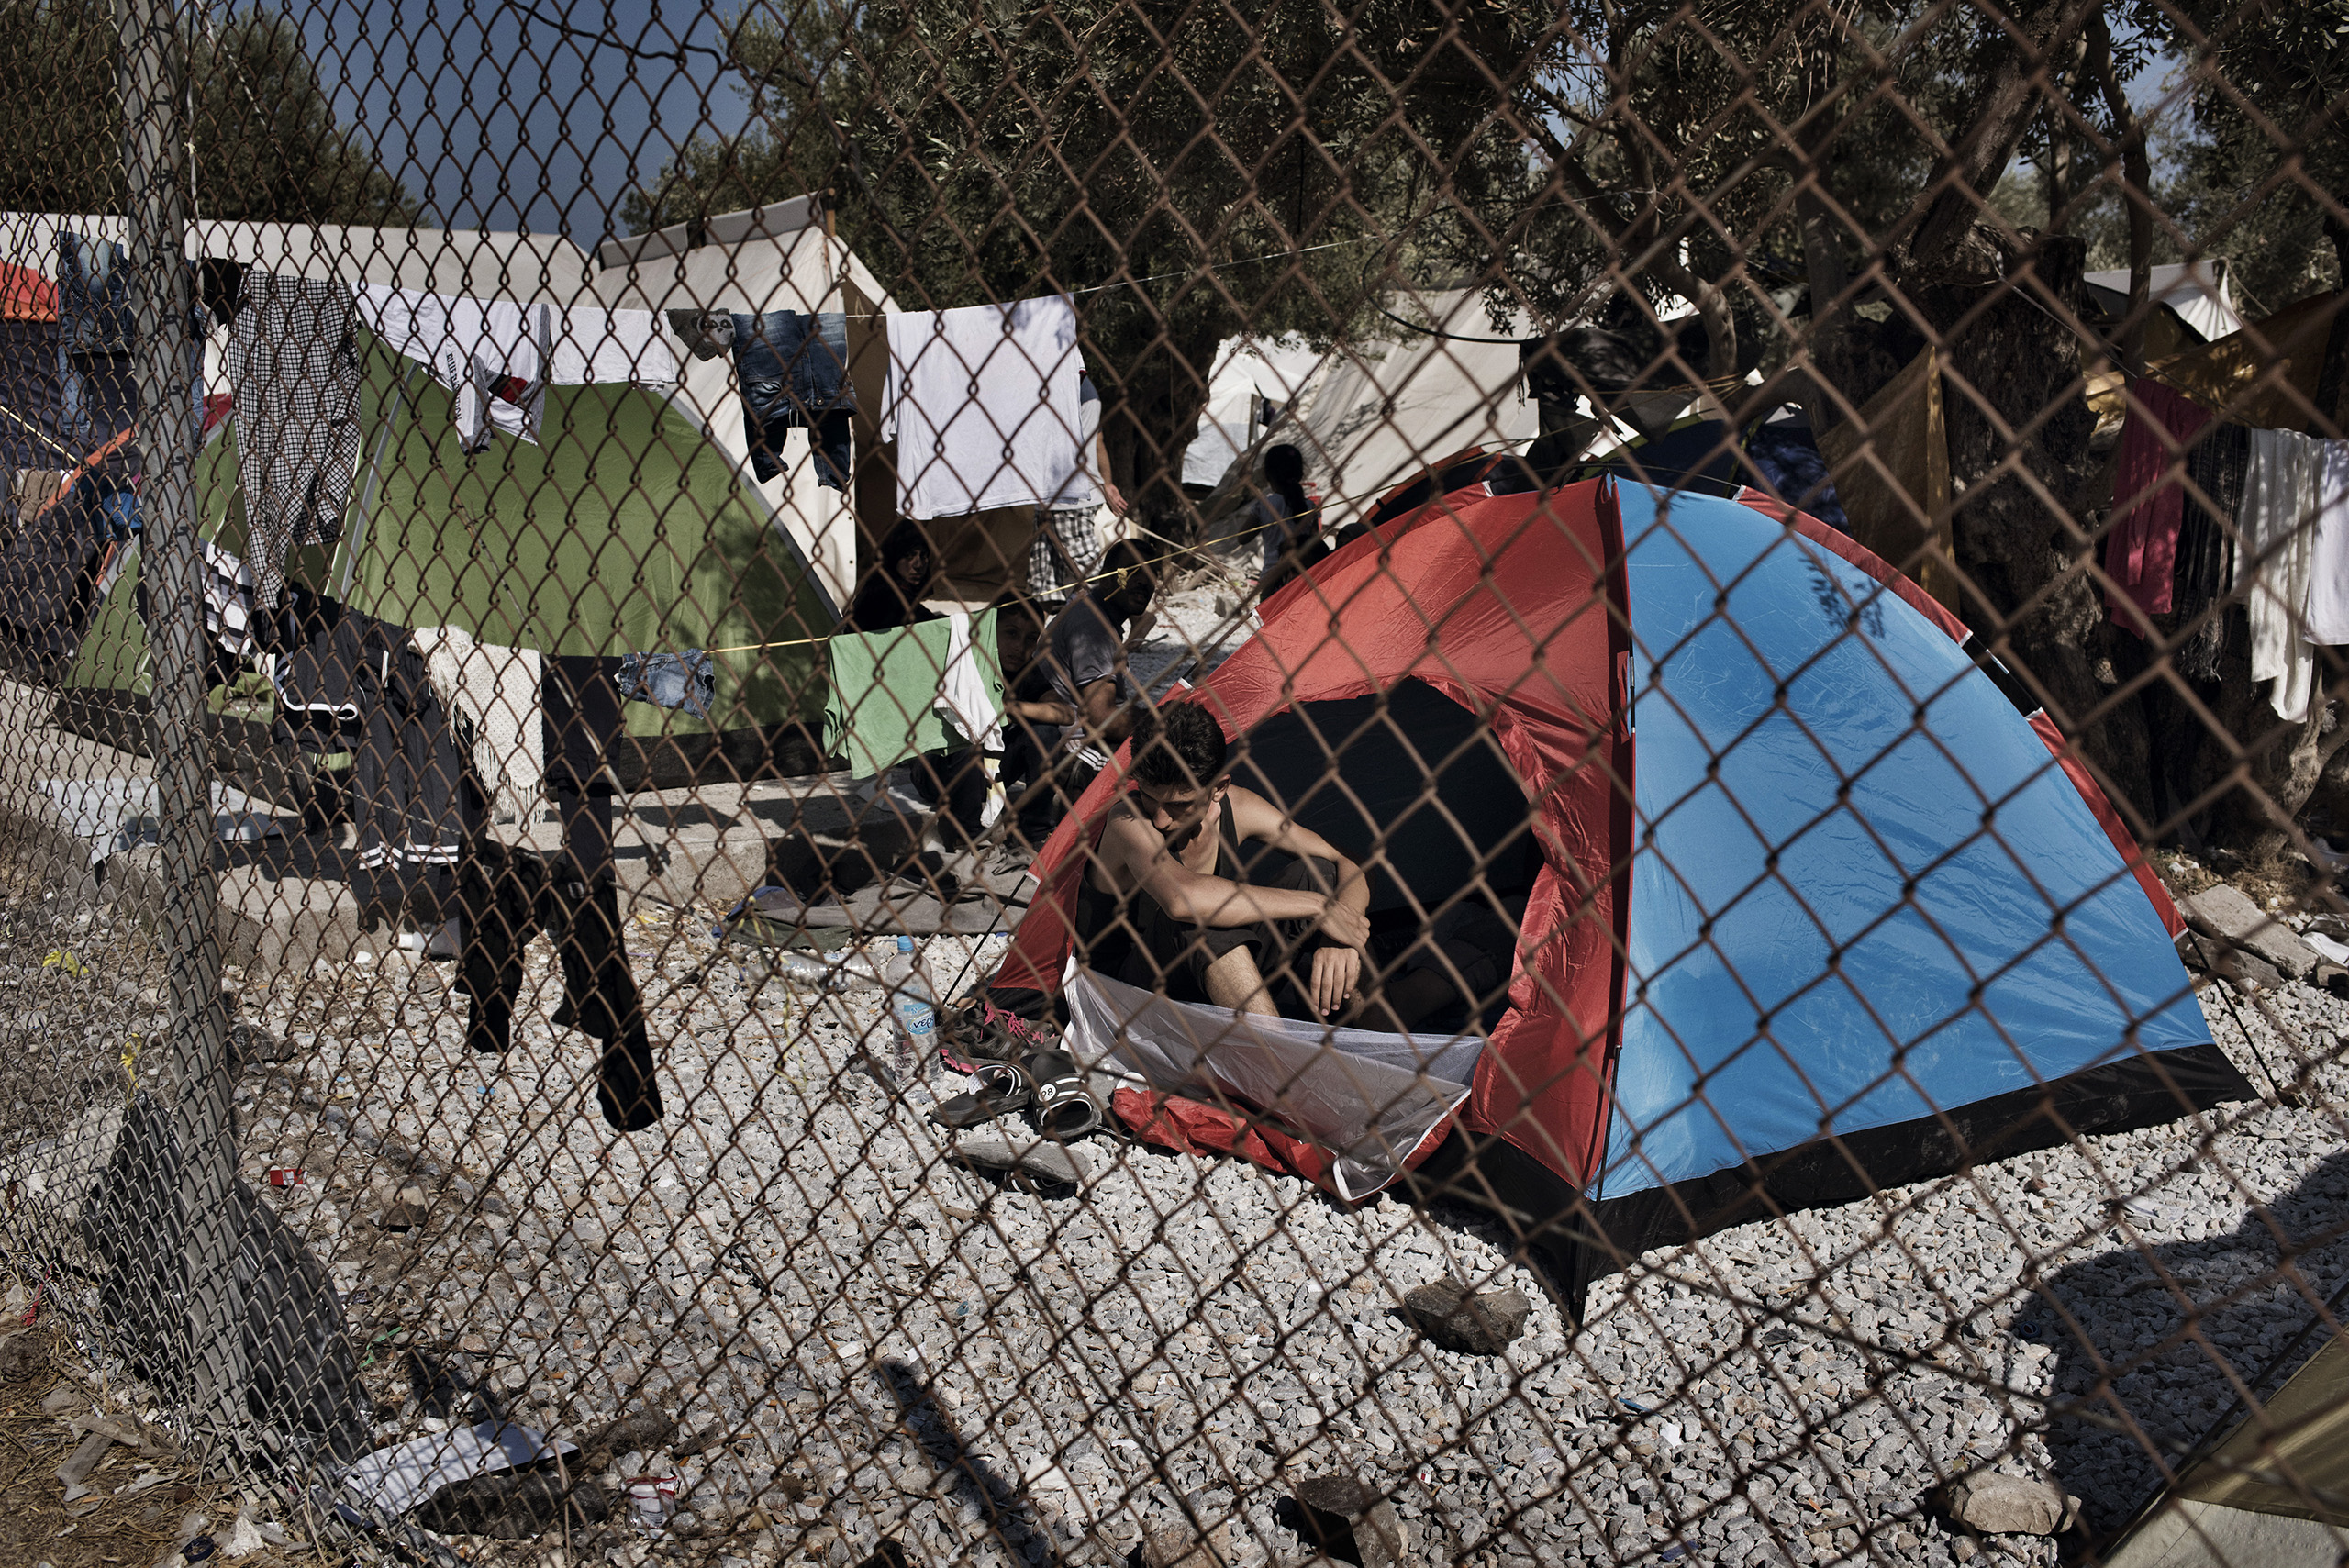 A Syrian migrant rests at a hastily built camp for asylum seekers on the Greek island of Lesbos. Sept. 4, 2015.